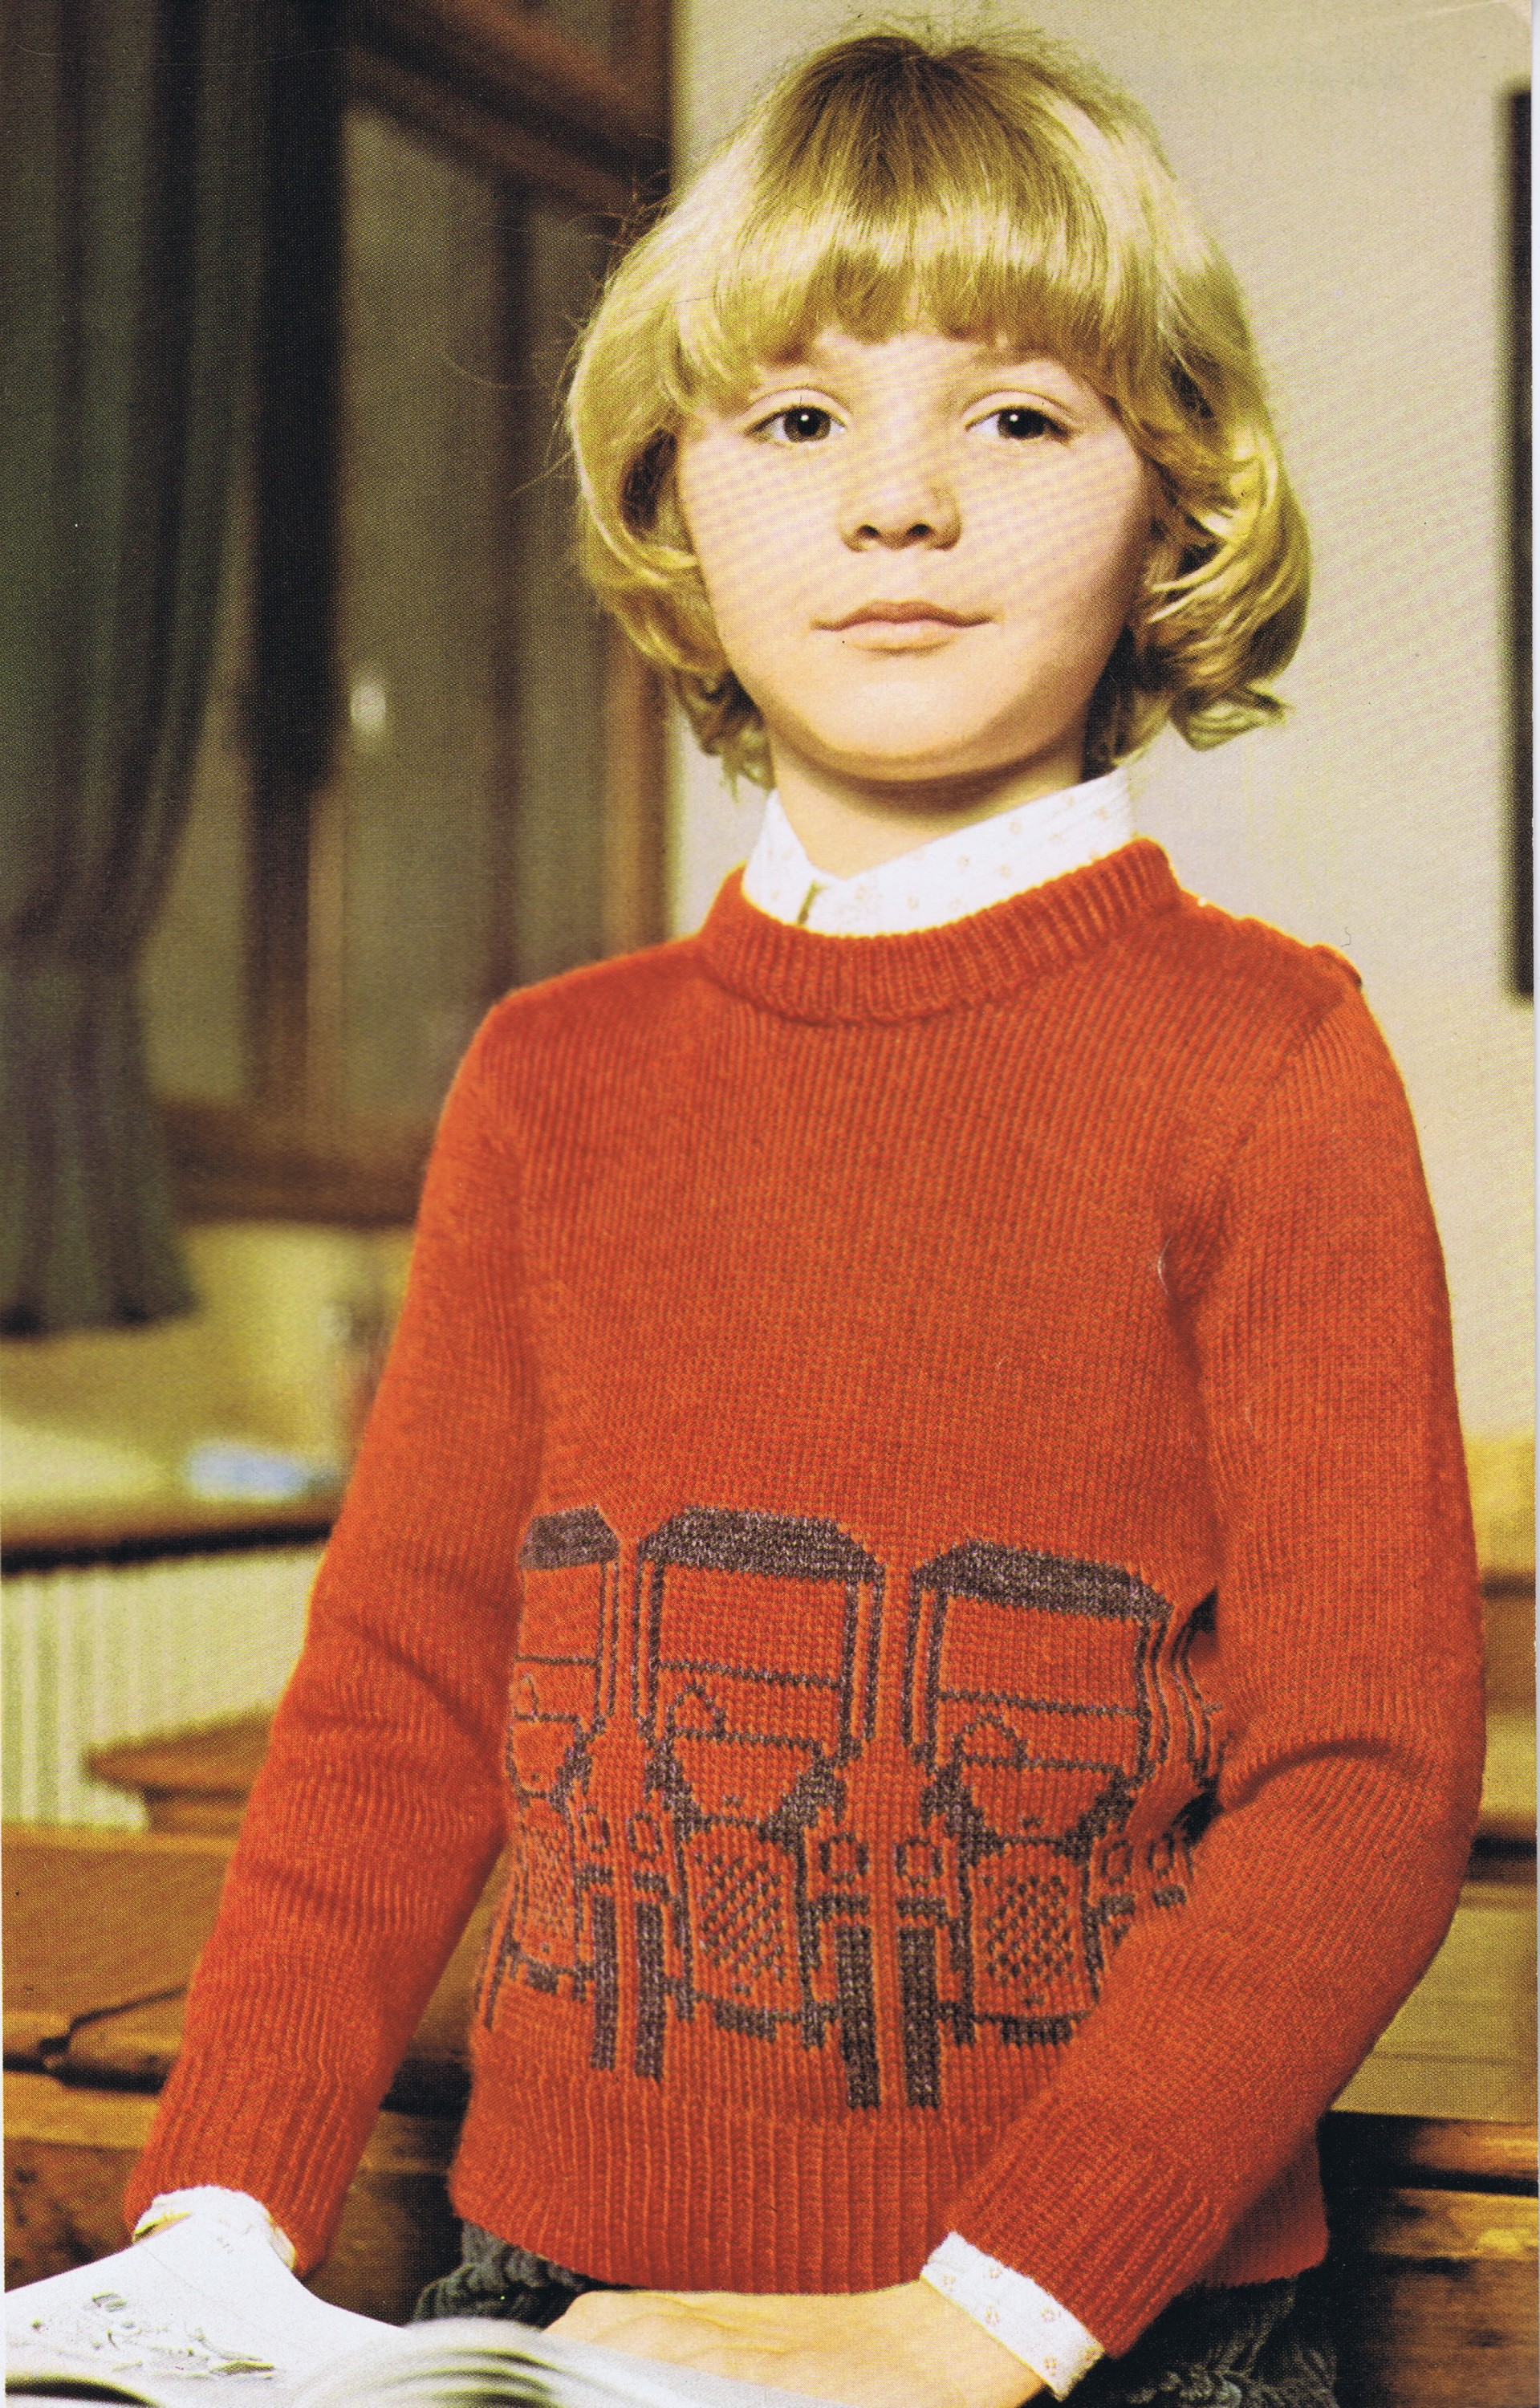 Knitted Childrens Sweaters Free Patterns Free Knitting Pattern Turtleneck Sweater Children Girls Boys